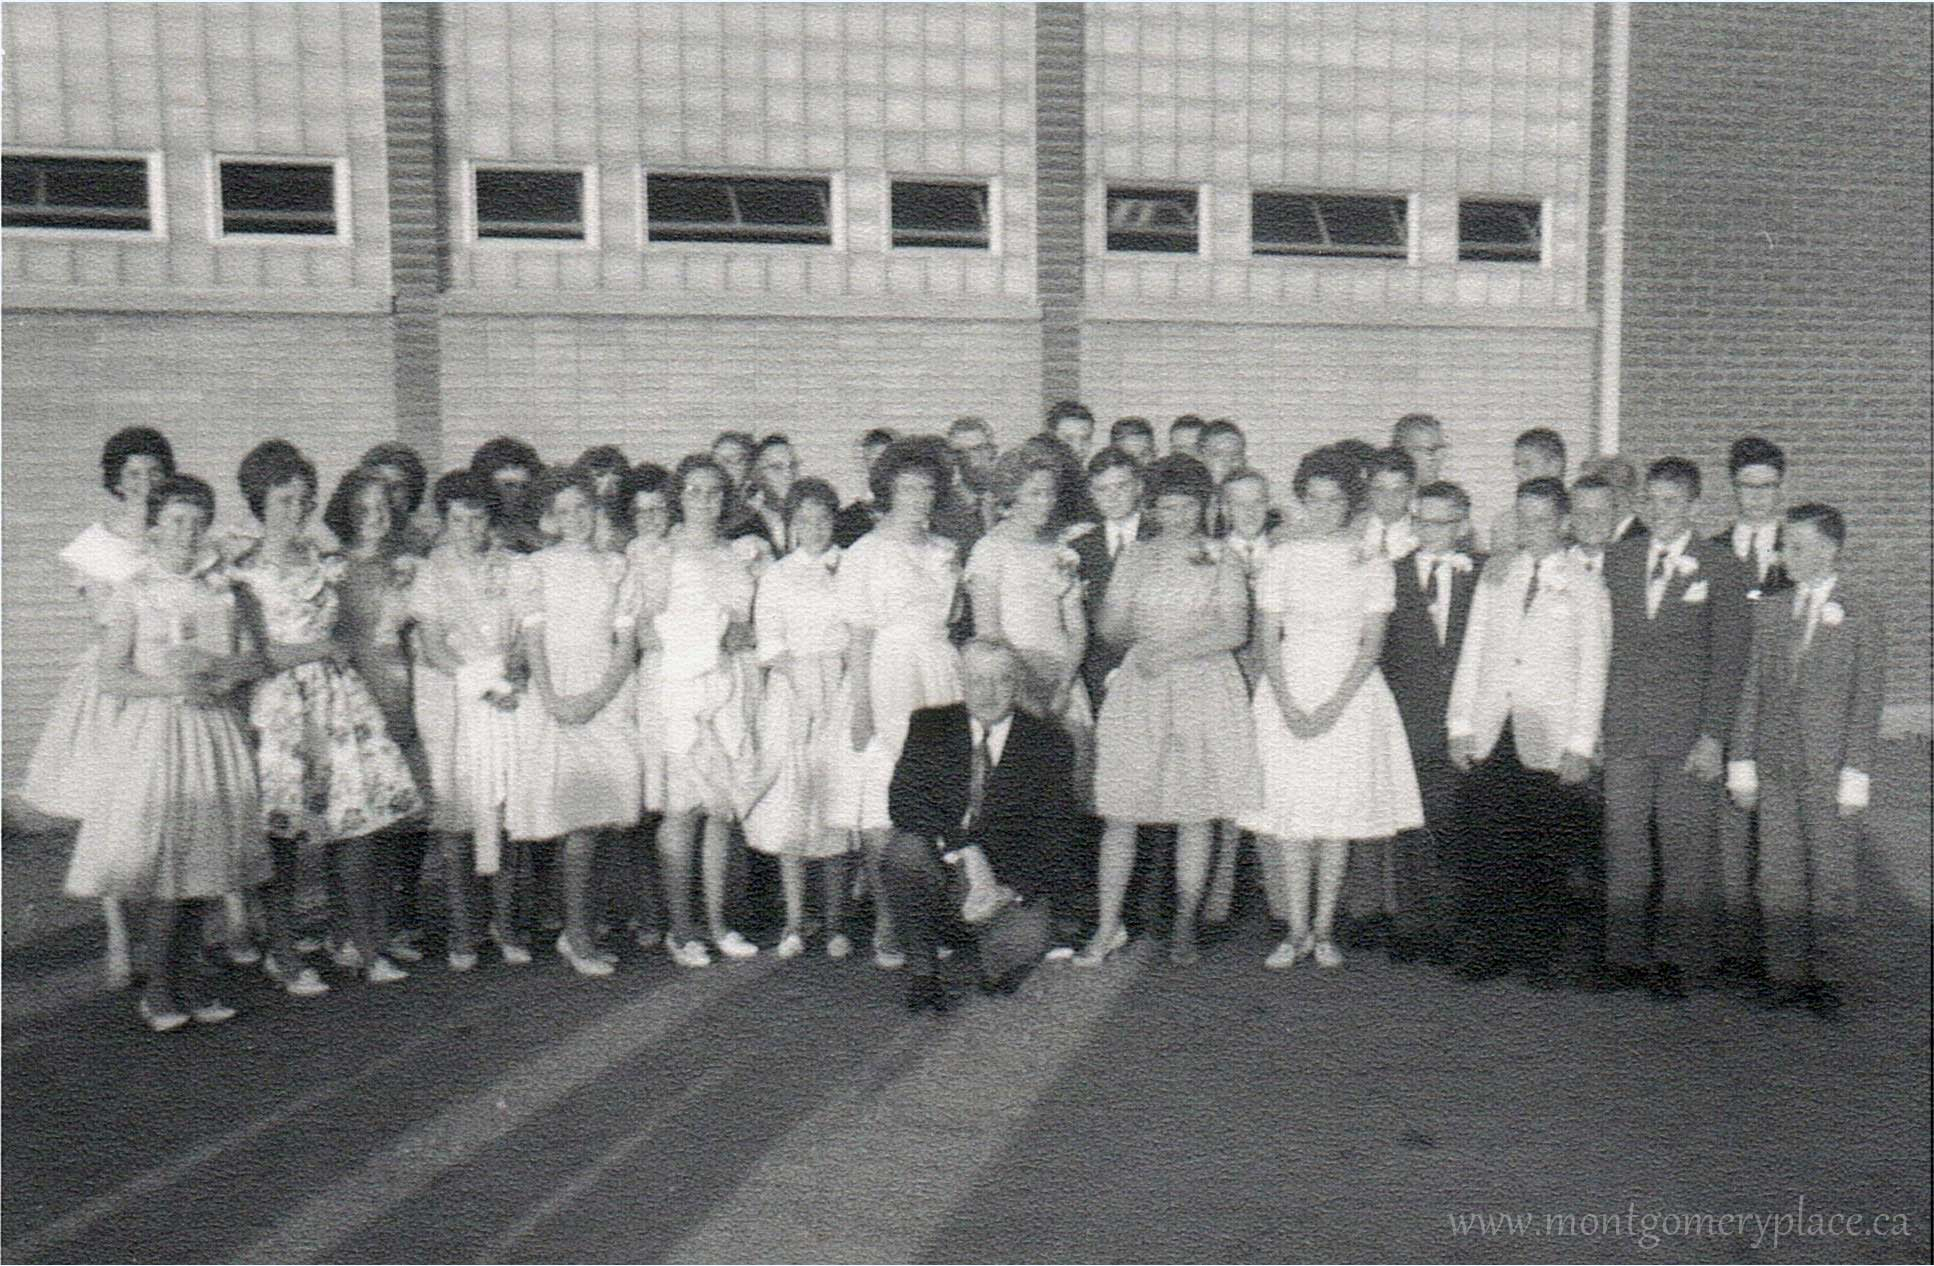 Moonie-Family-3149-11th-St-Montgomery-School-Gr-8-Grad-1961